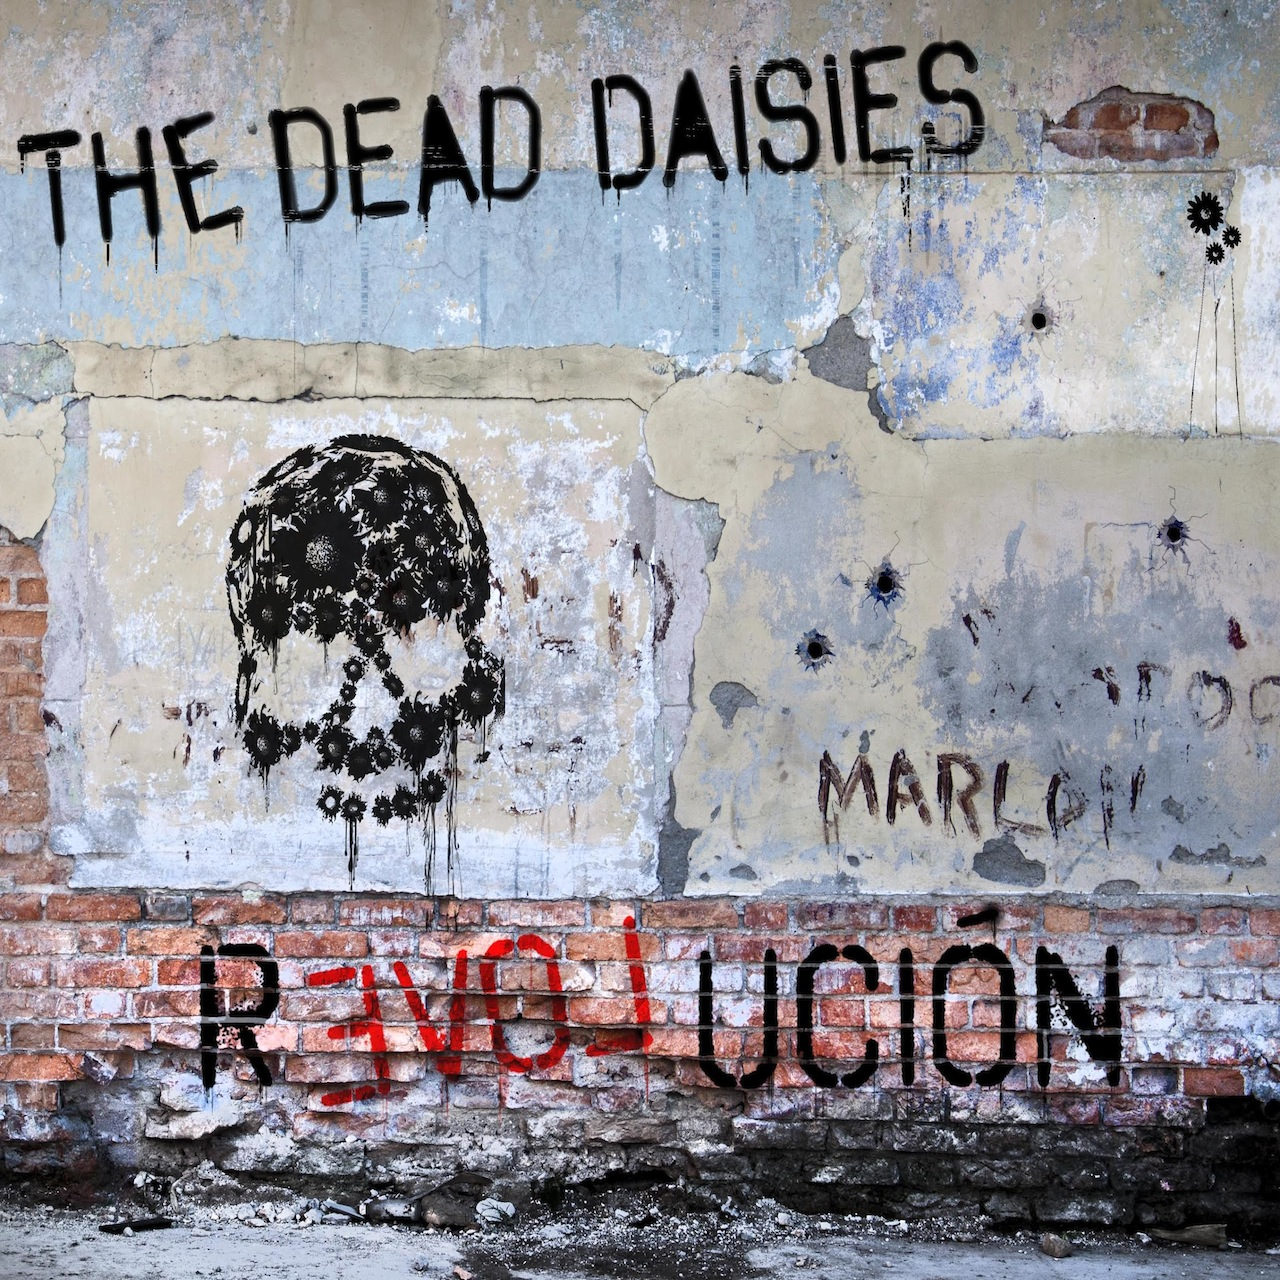 THE DEAD DAISIES Announce UK Tour In December